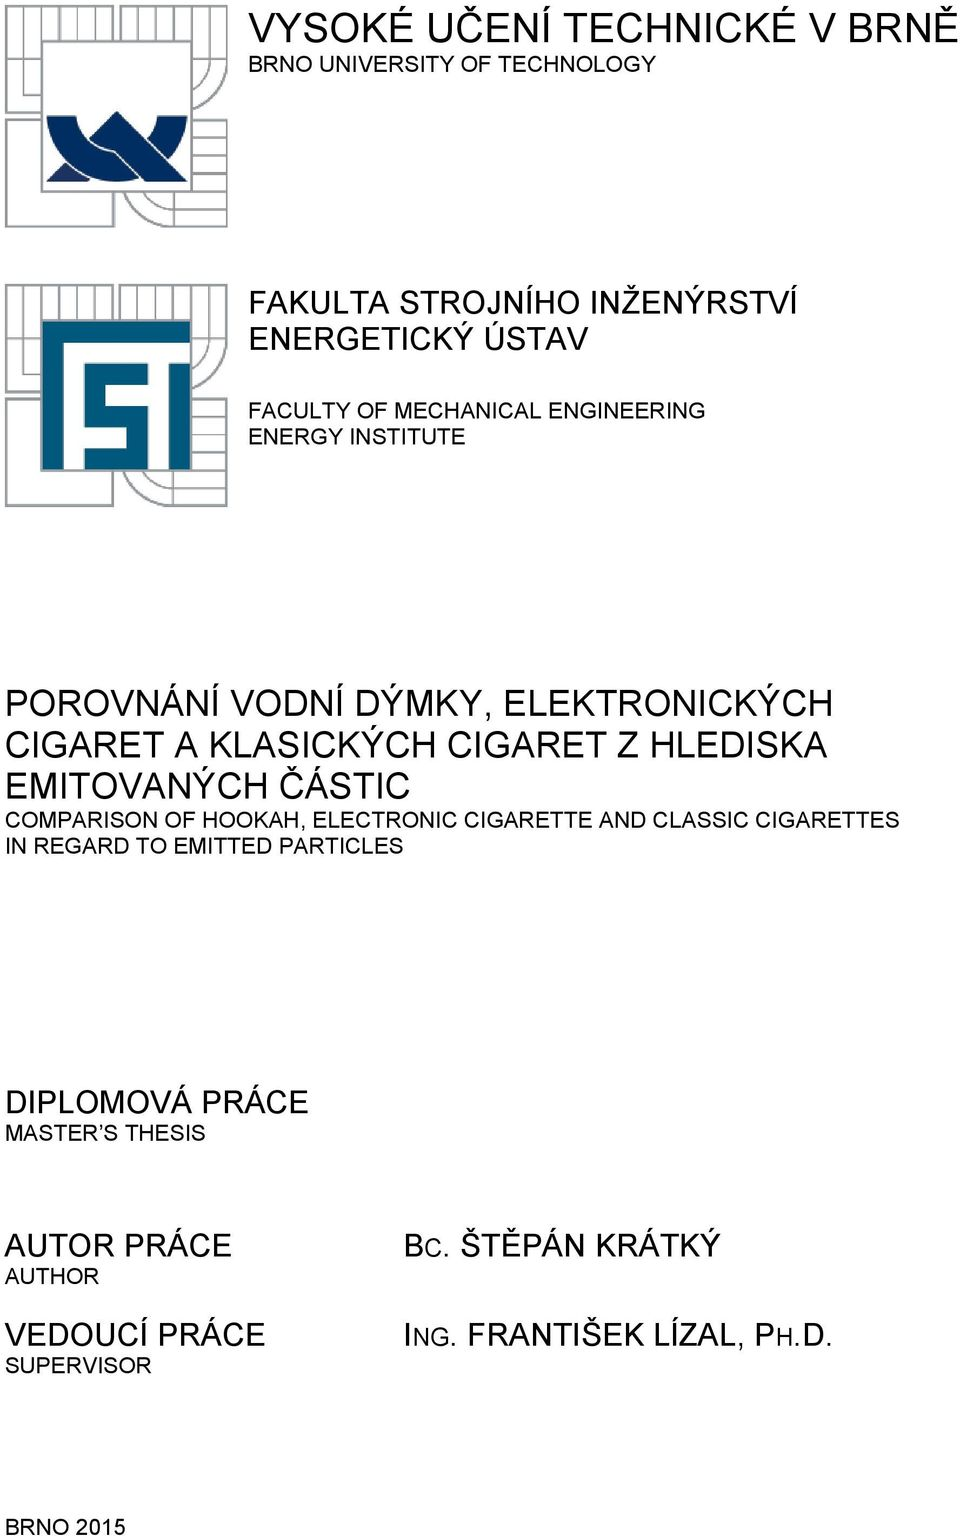 EMITOVANÝCH ČÁSTIC COMPARISON OF HOOKAH, ELECTRONIC CIGARETTE AND CLASSIC CIGARETTES IN REGARD TO EMITTED PARTICLES